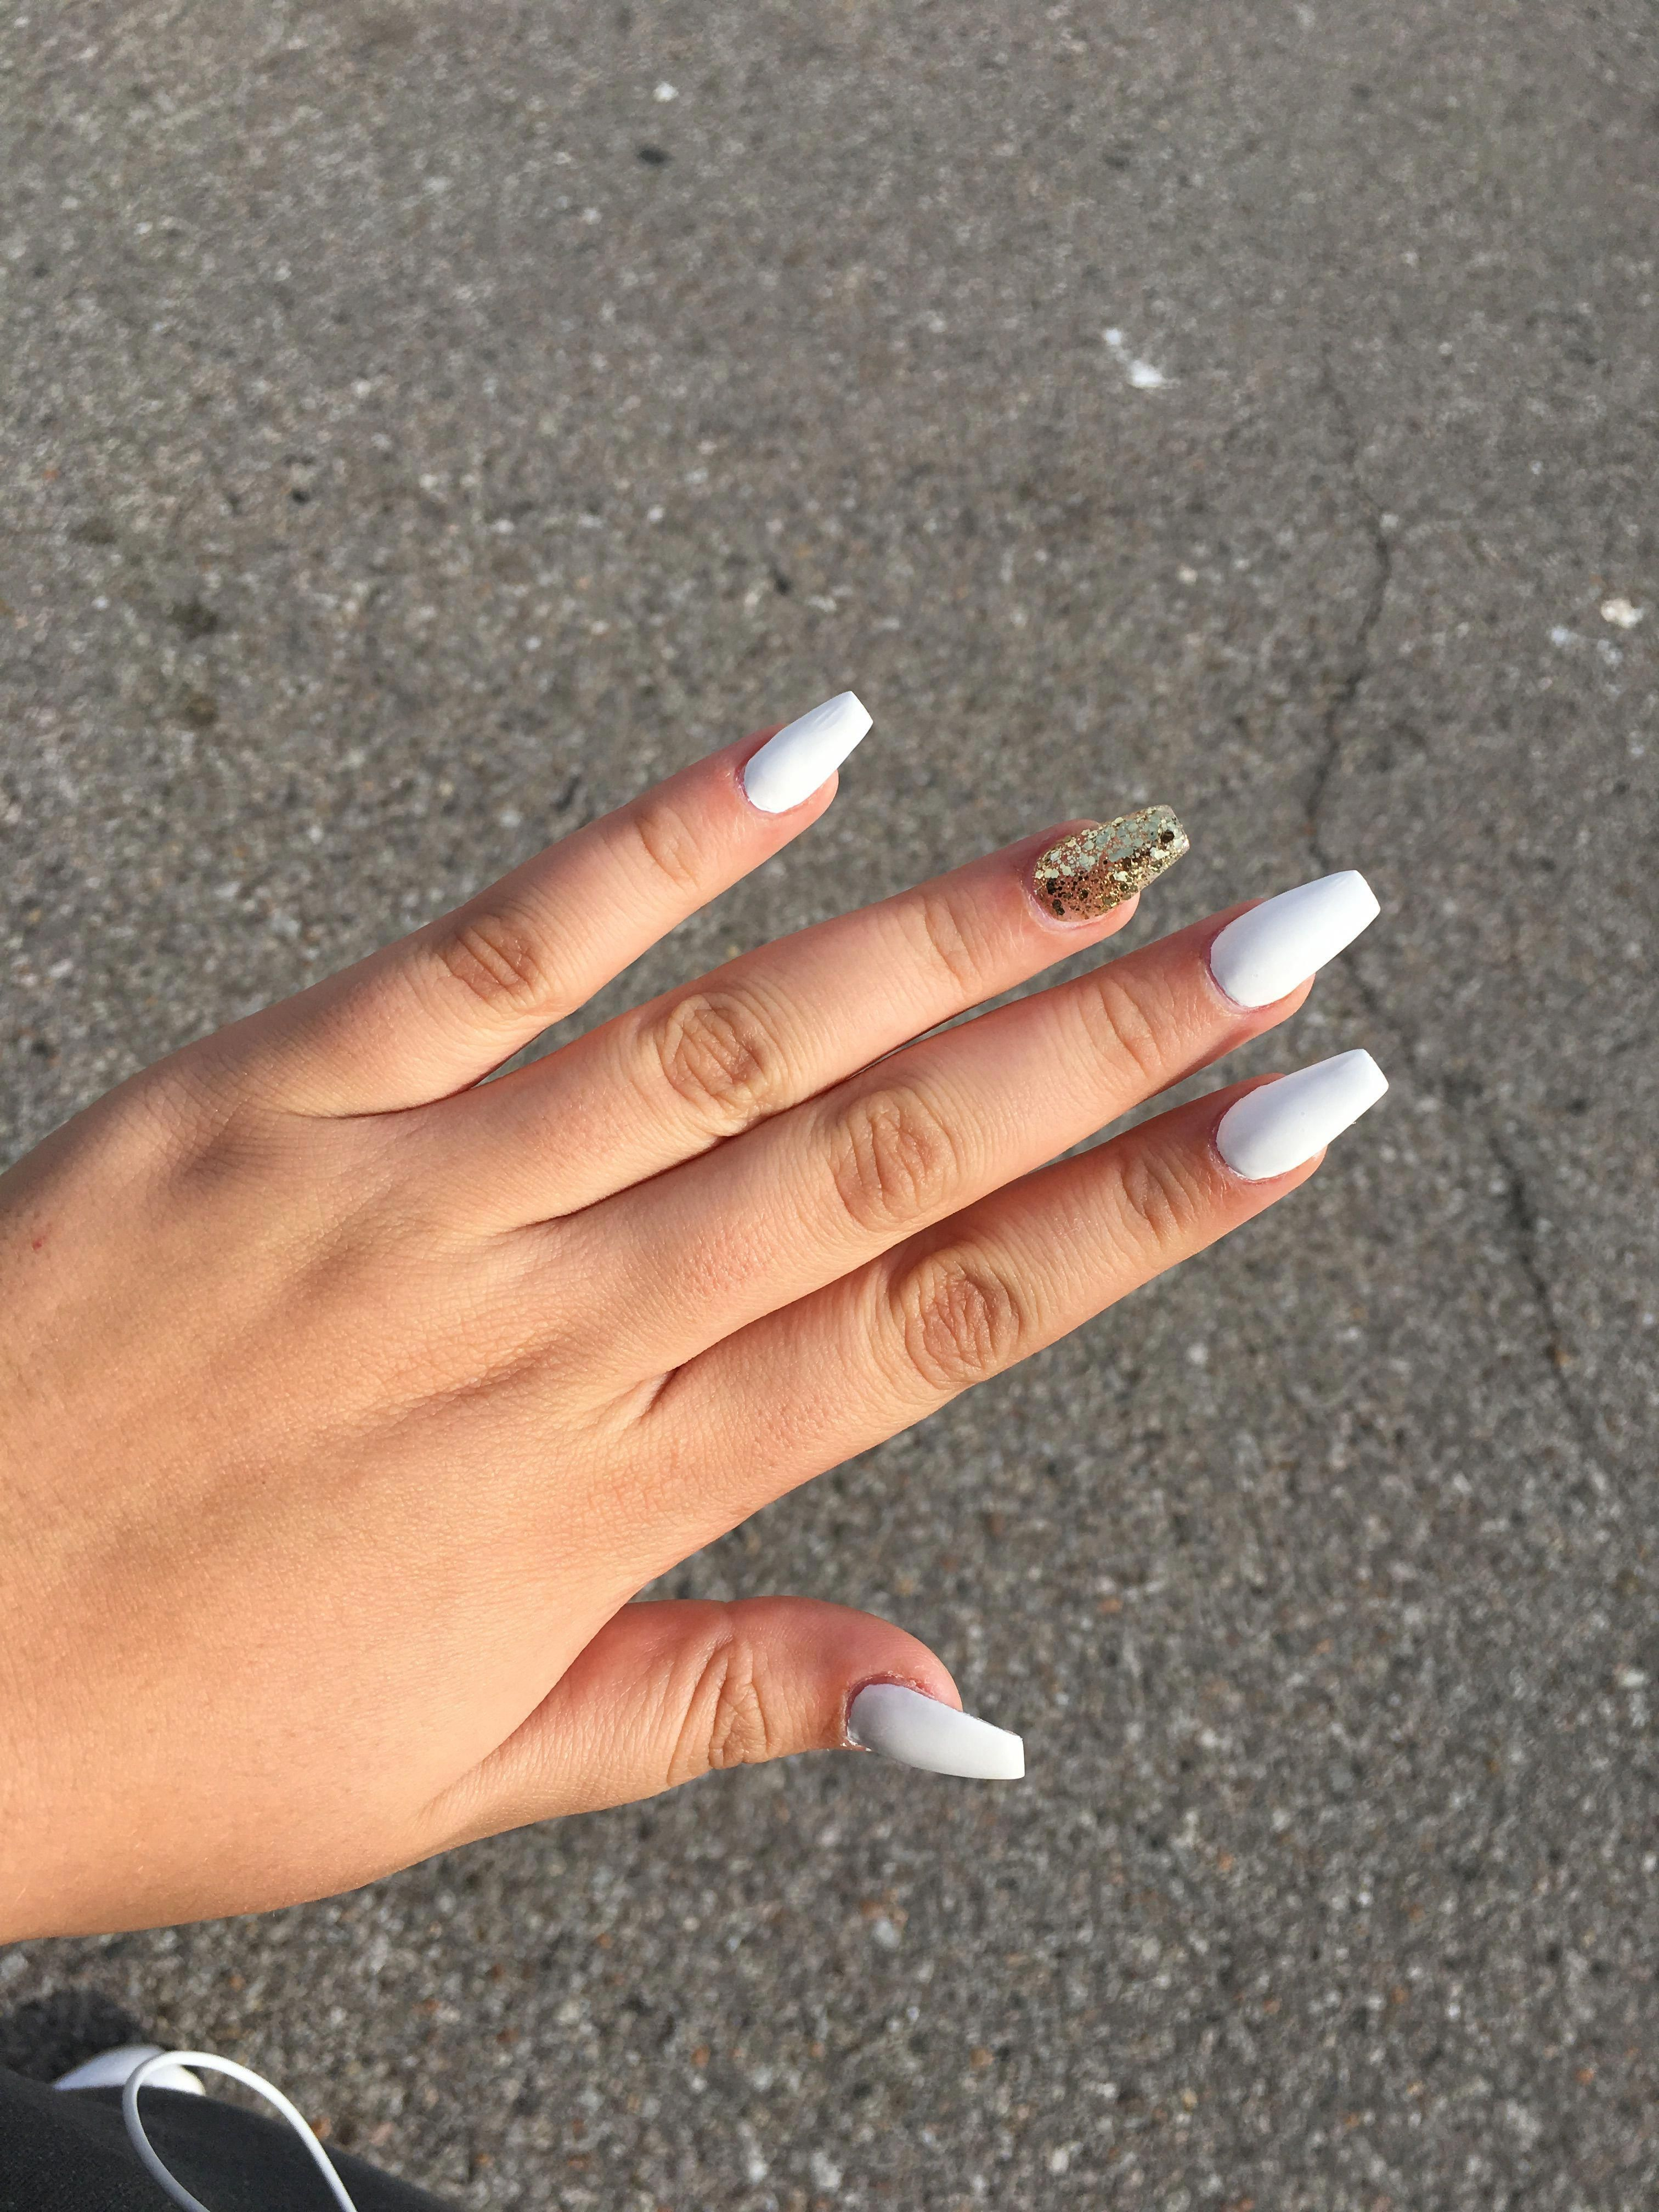 Nails Check Out This Top Nail Pin Suggestion 8503966584 For Simply Great Looking Nails In 2020 White Acrylic Nails White Nails With Gold Acrylic Nails Coffin Short